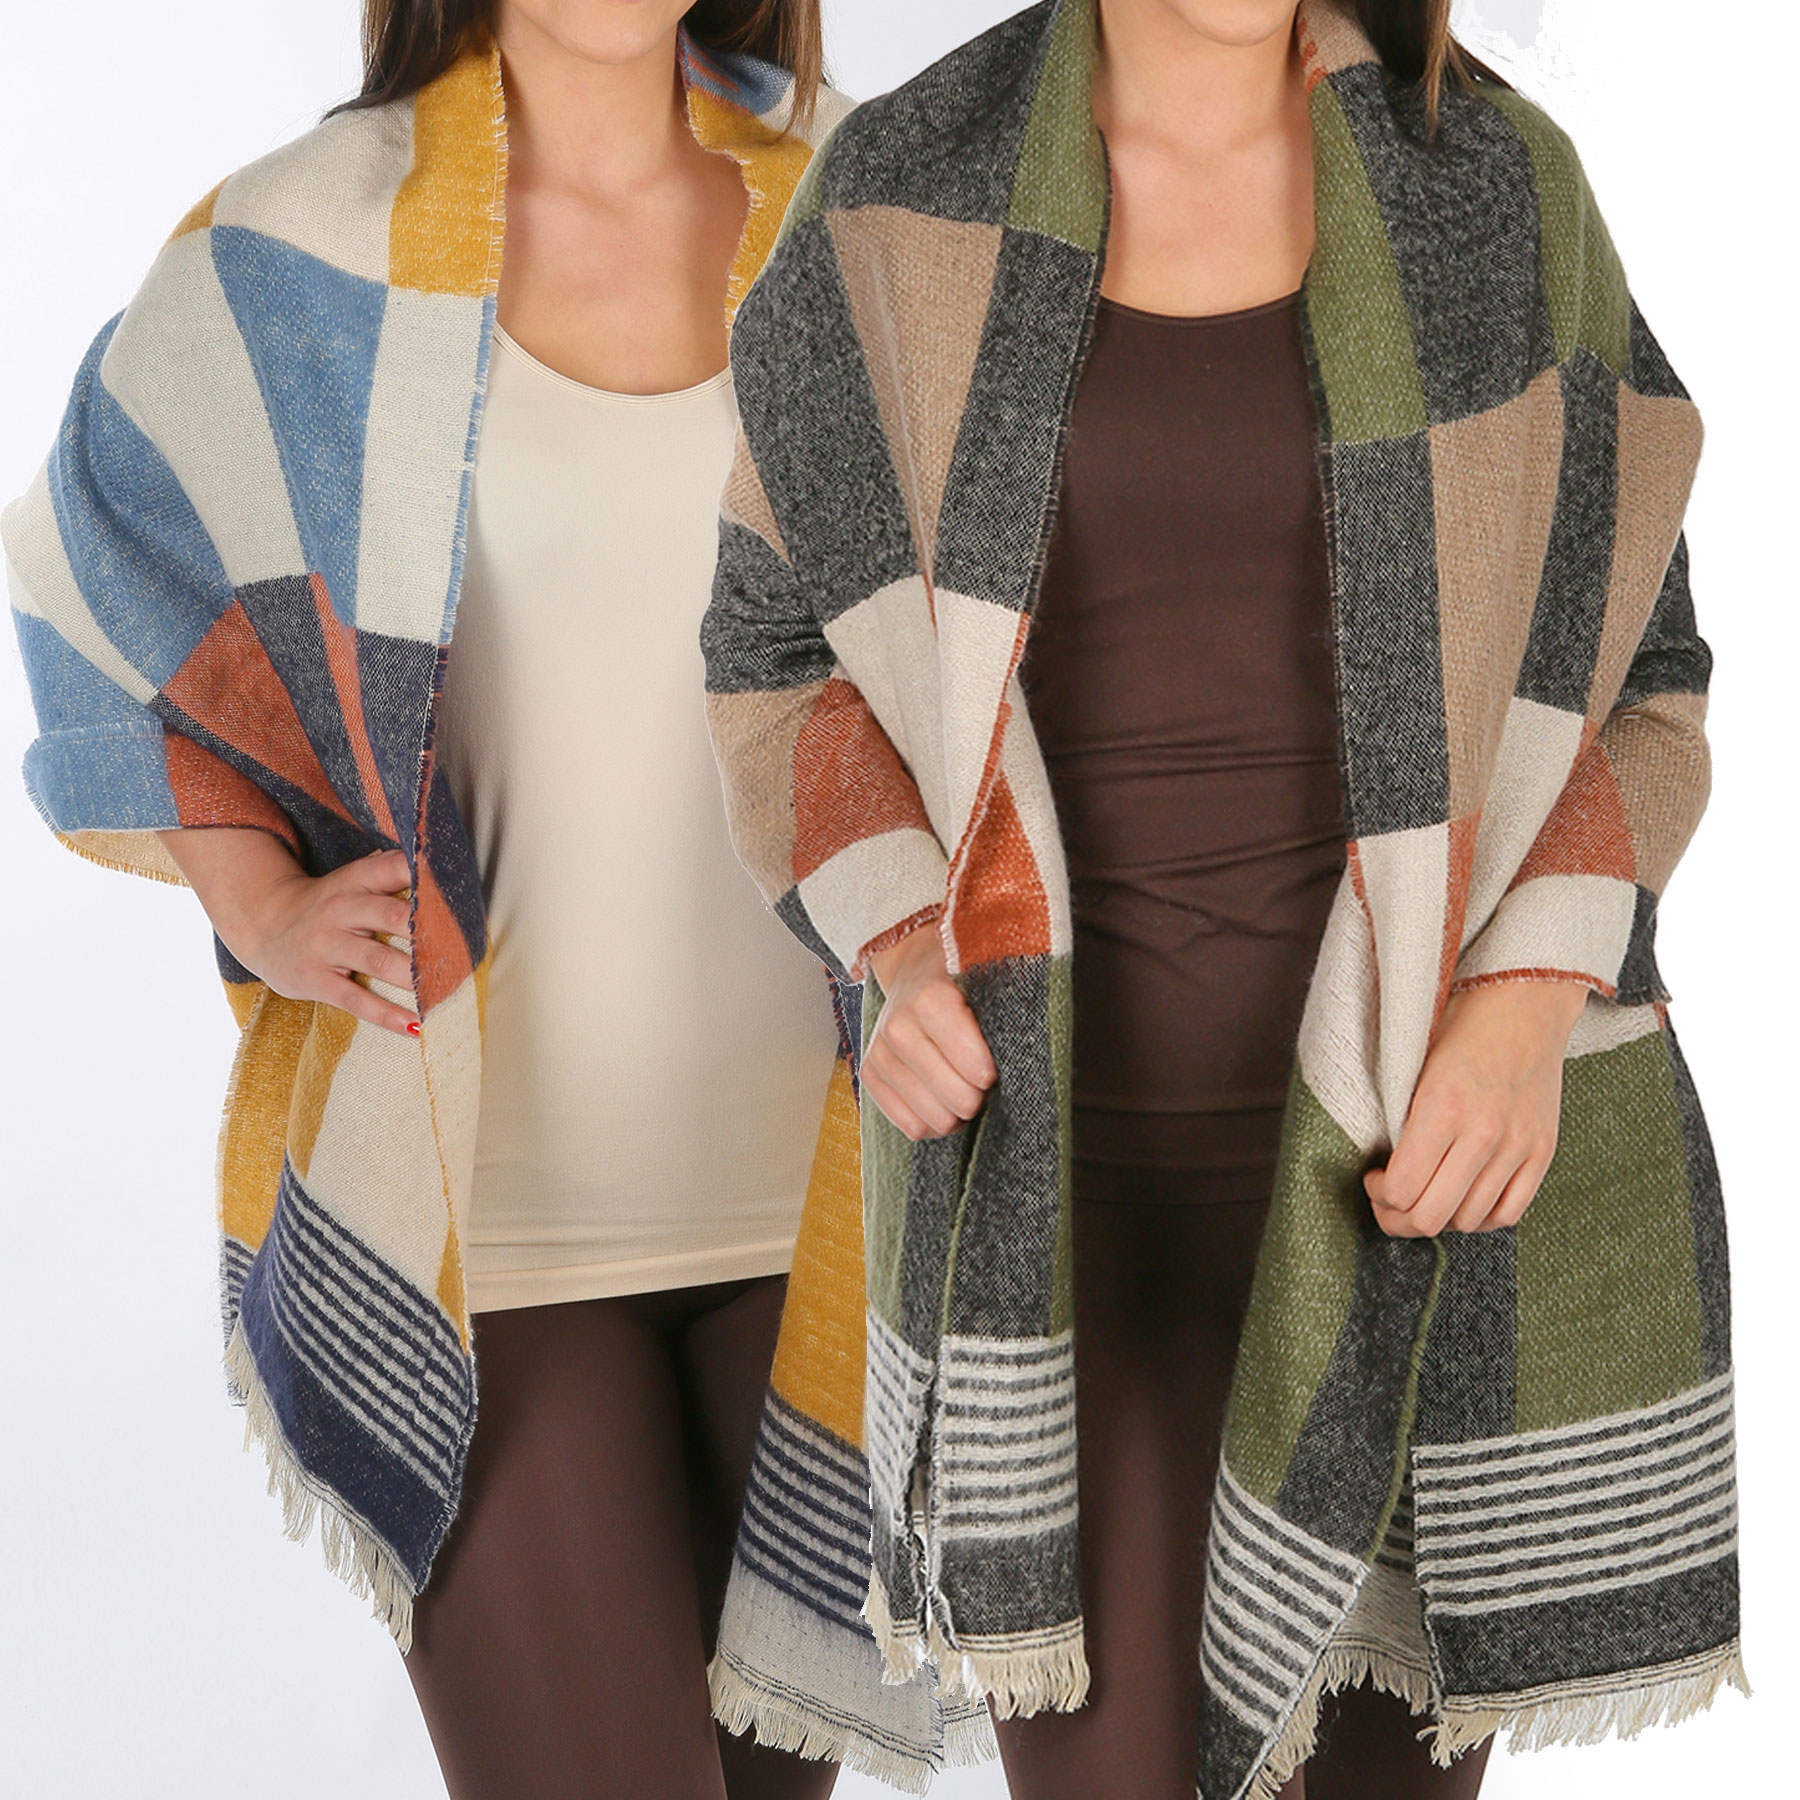 Winter Shawls - Plaids, Checks, & Herringbone